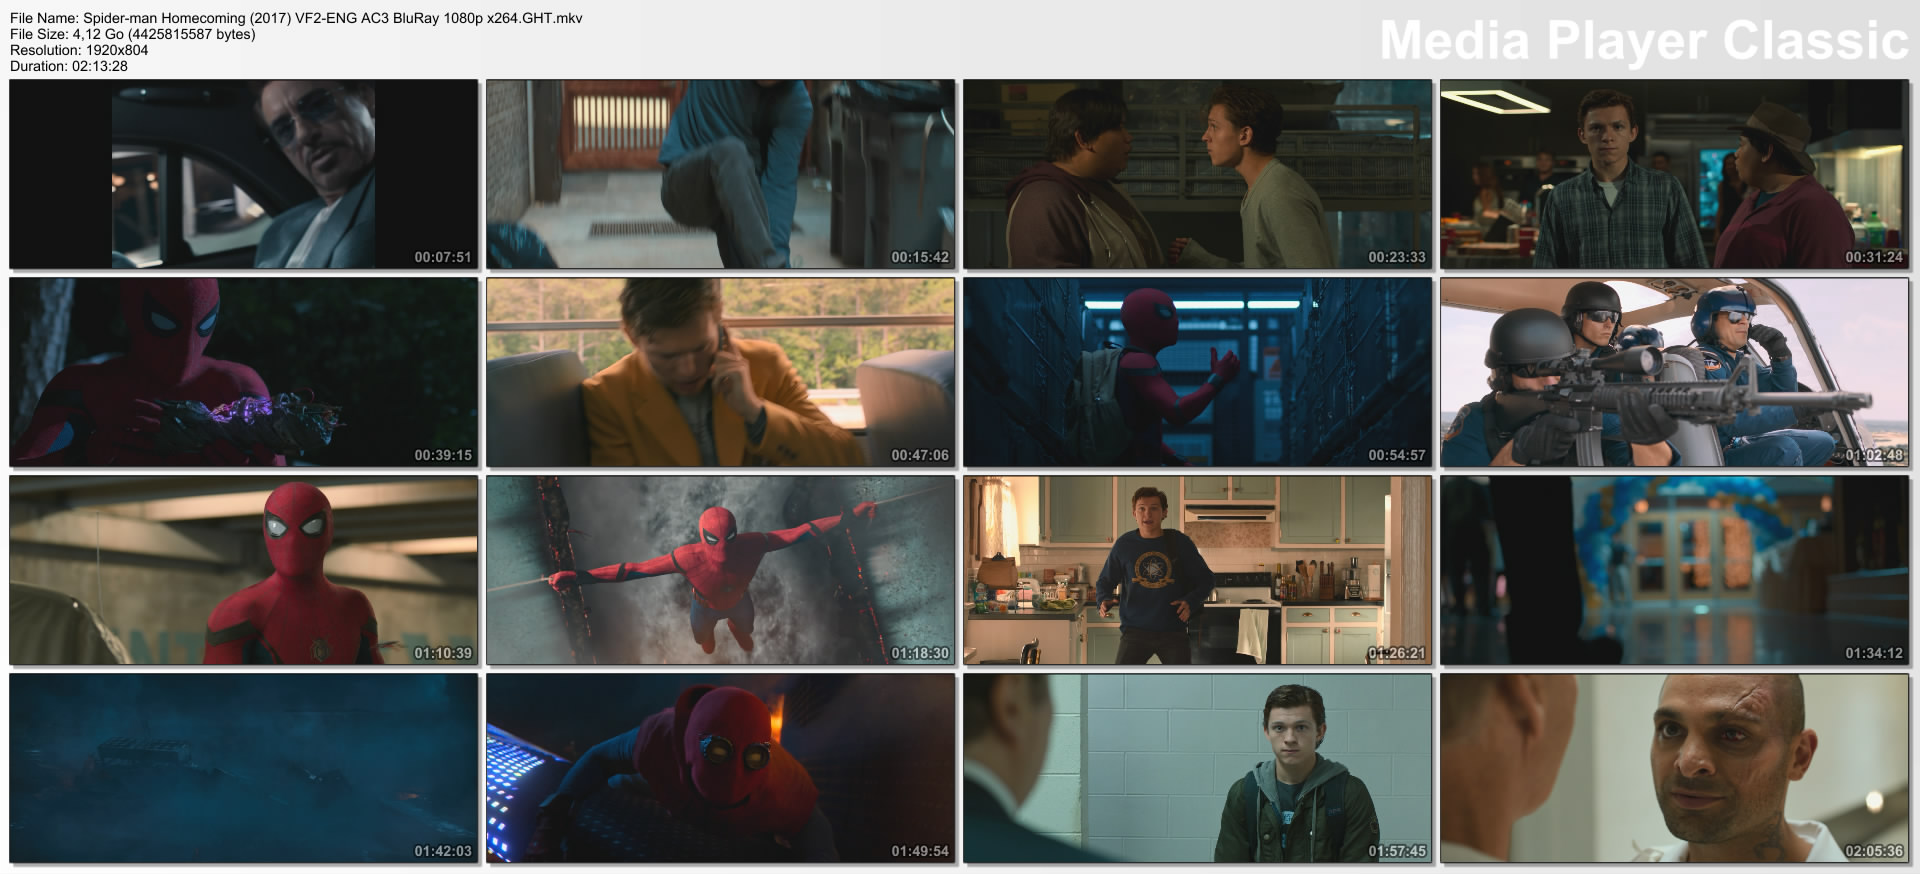 Spider-man Homecoming (2017) VF2-ENG AC3 BluRay 1080p x264.GHT